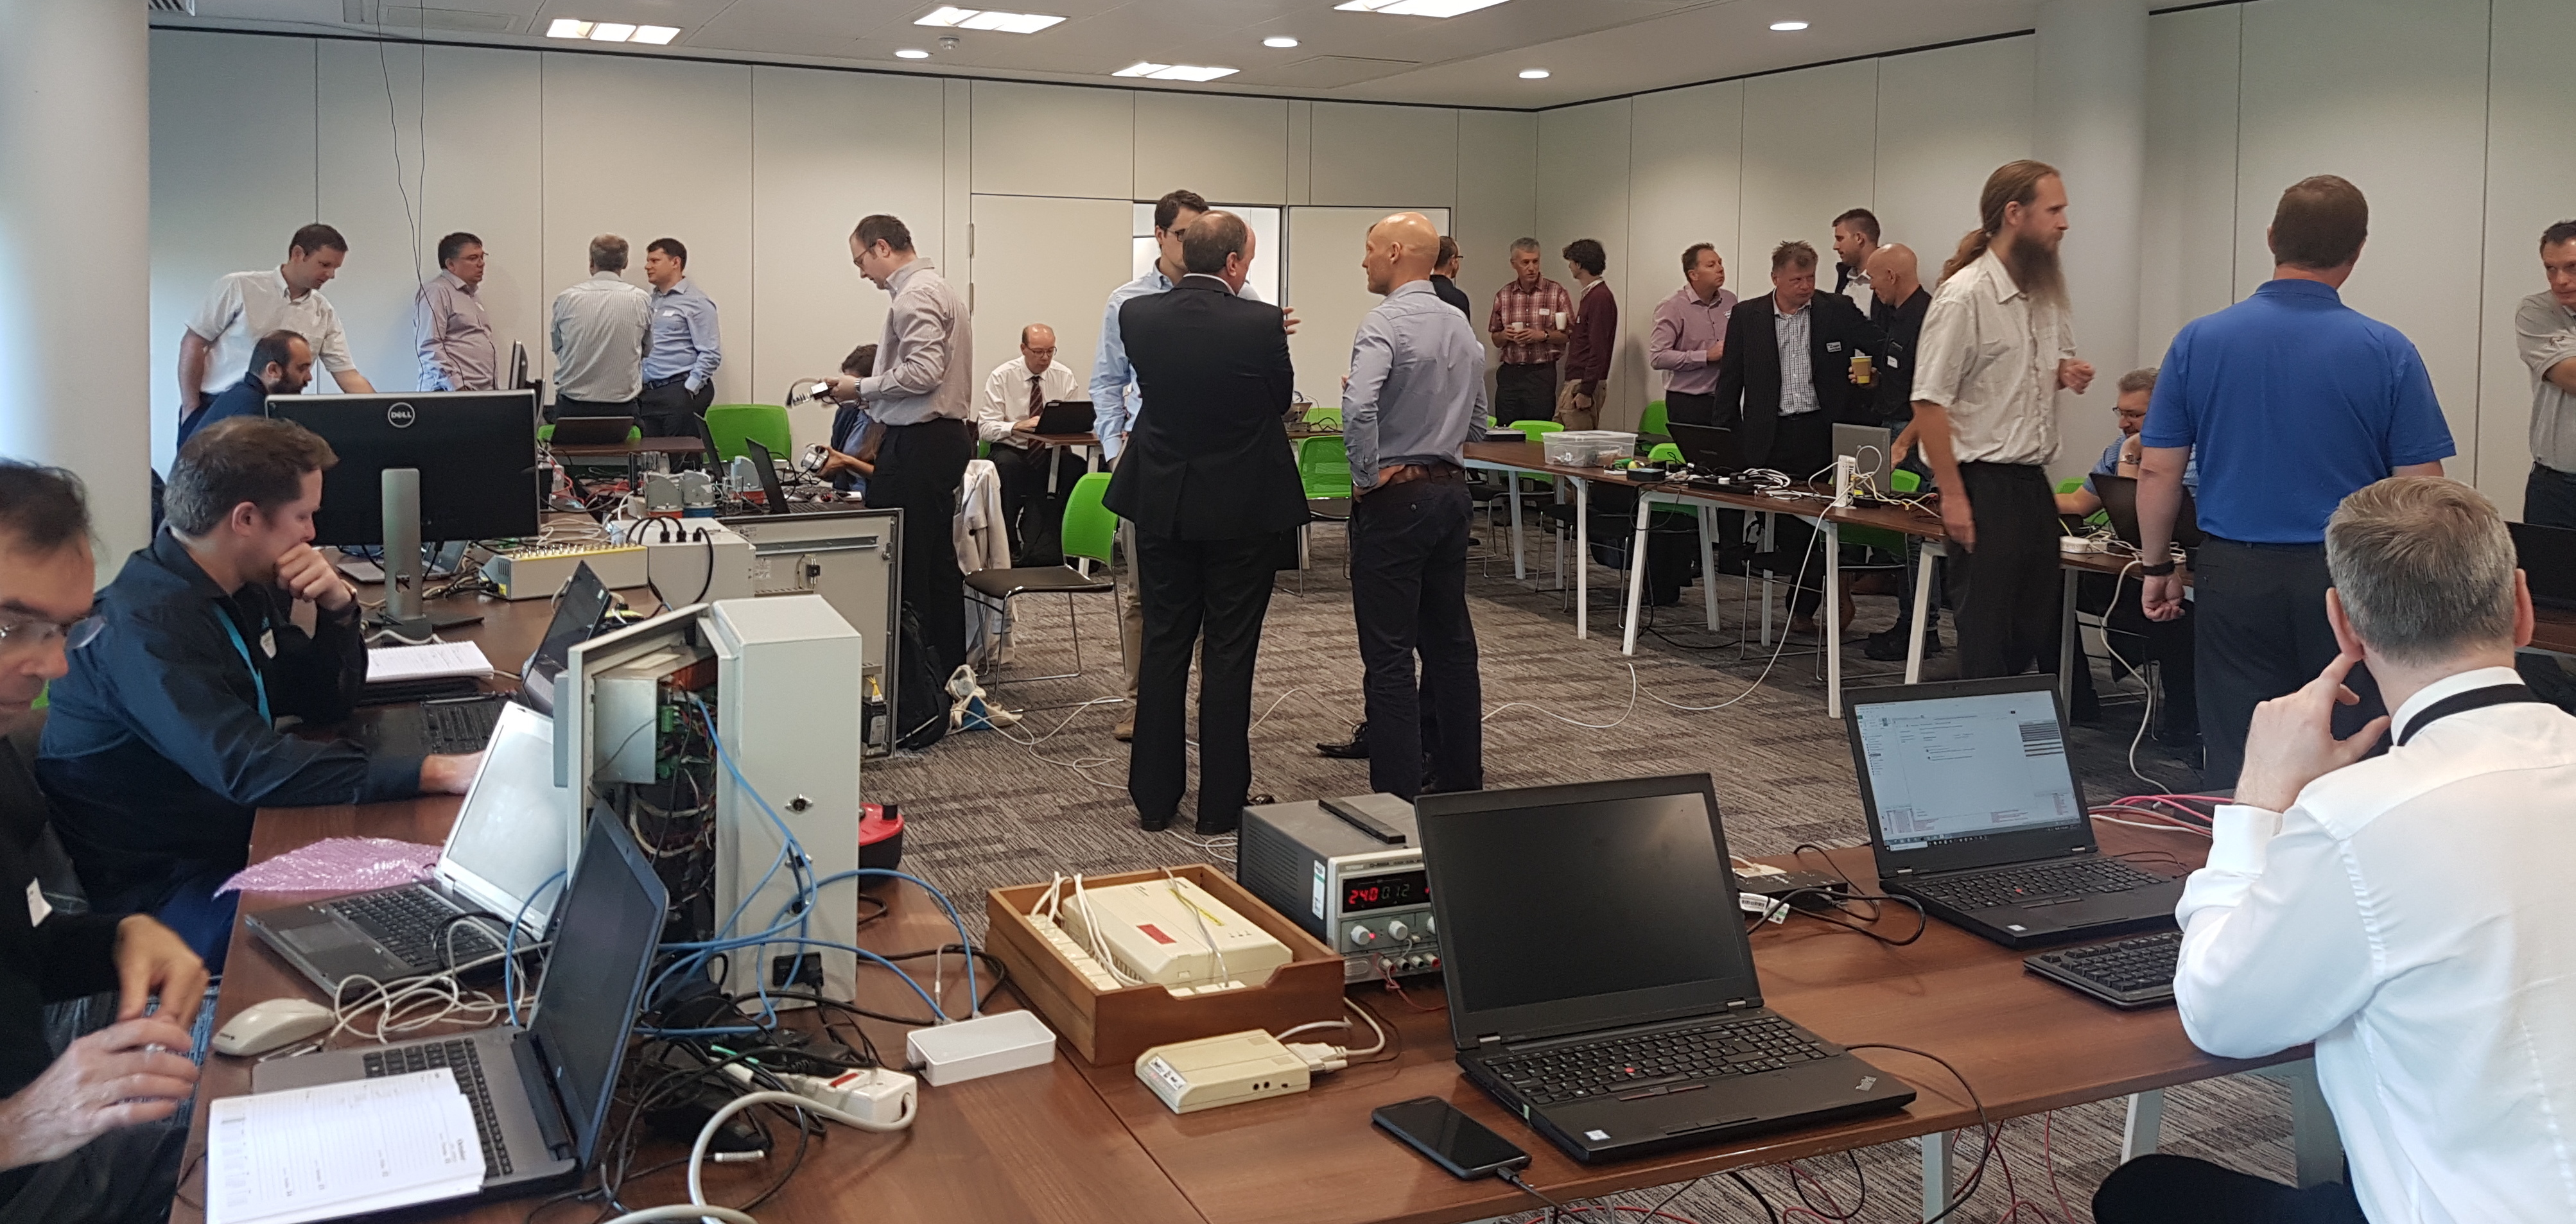 Activity at the October Plugfest